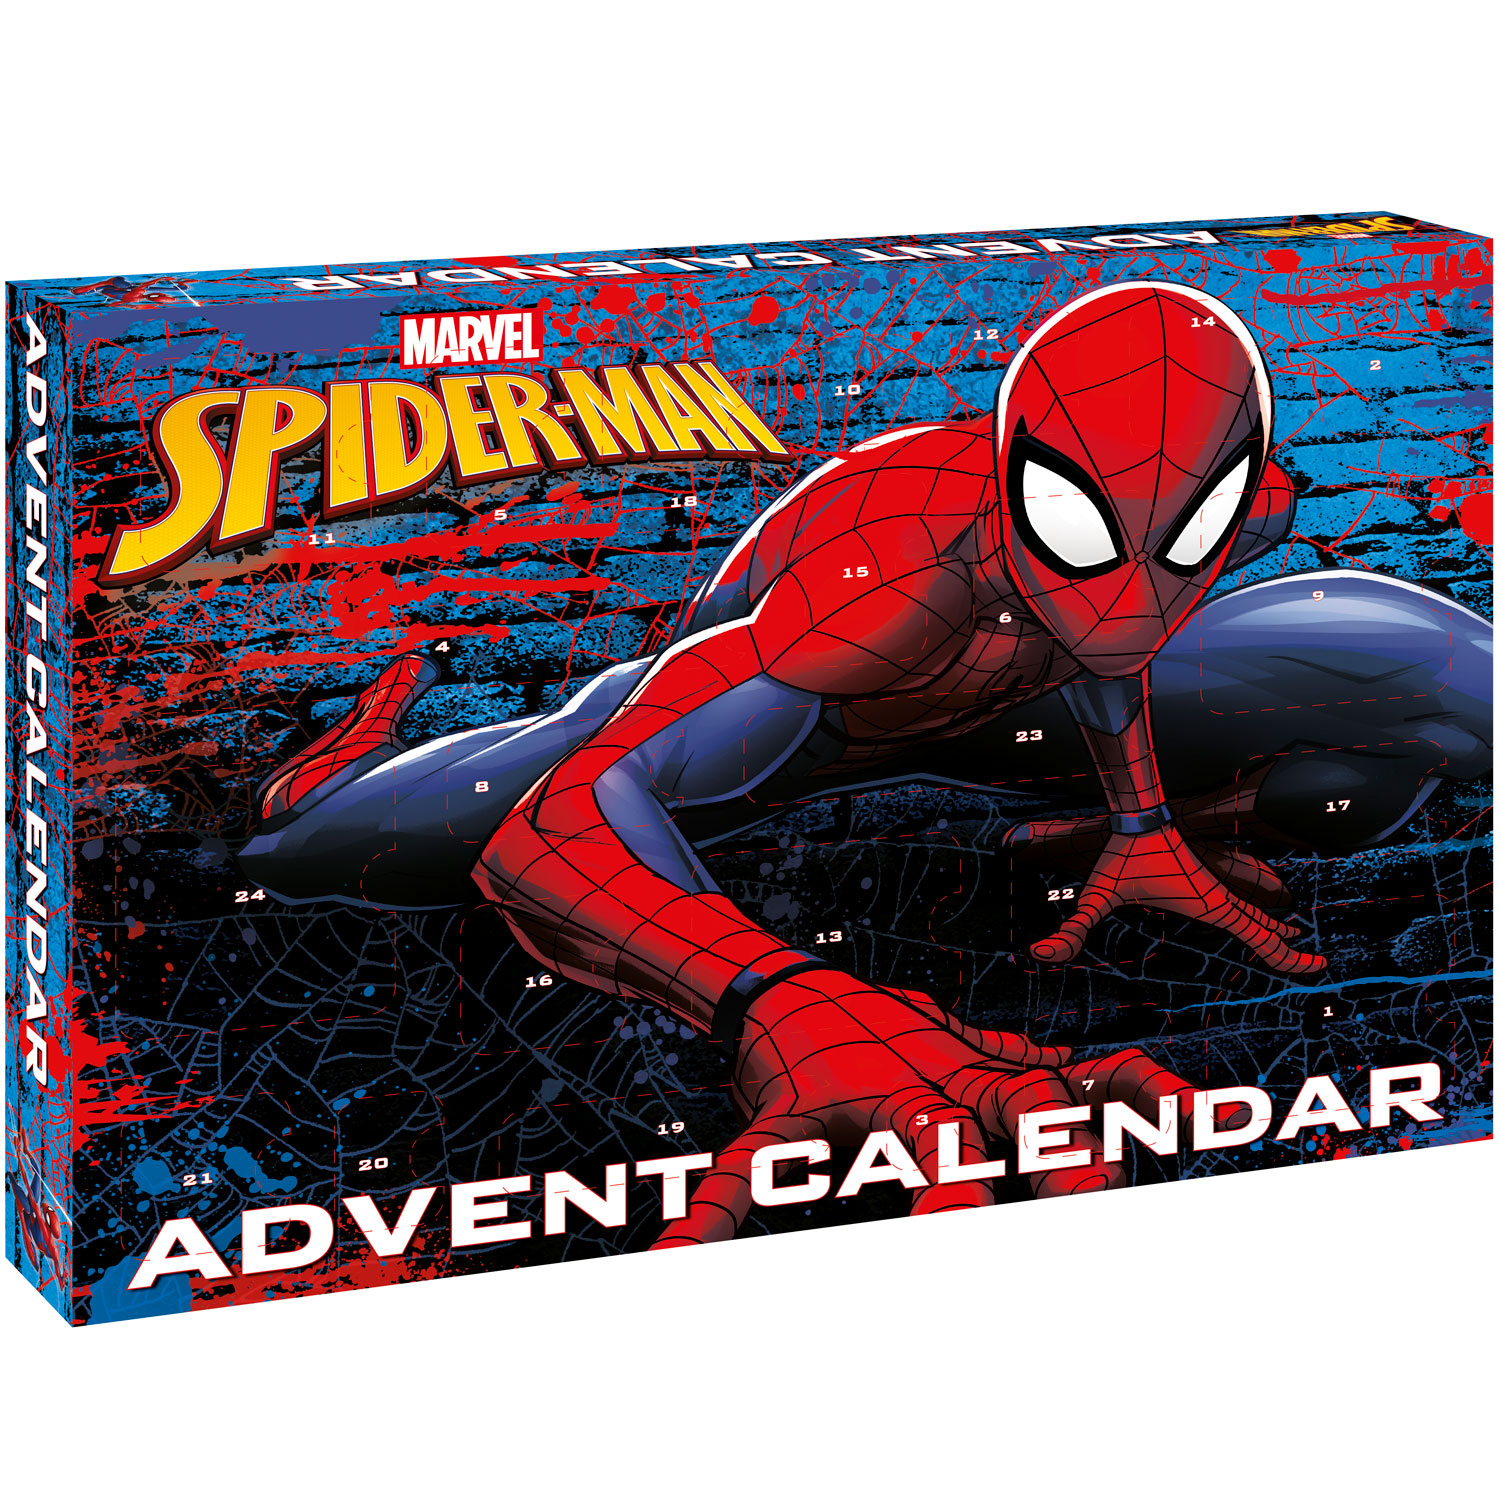 Adventskalender Spiderman